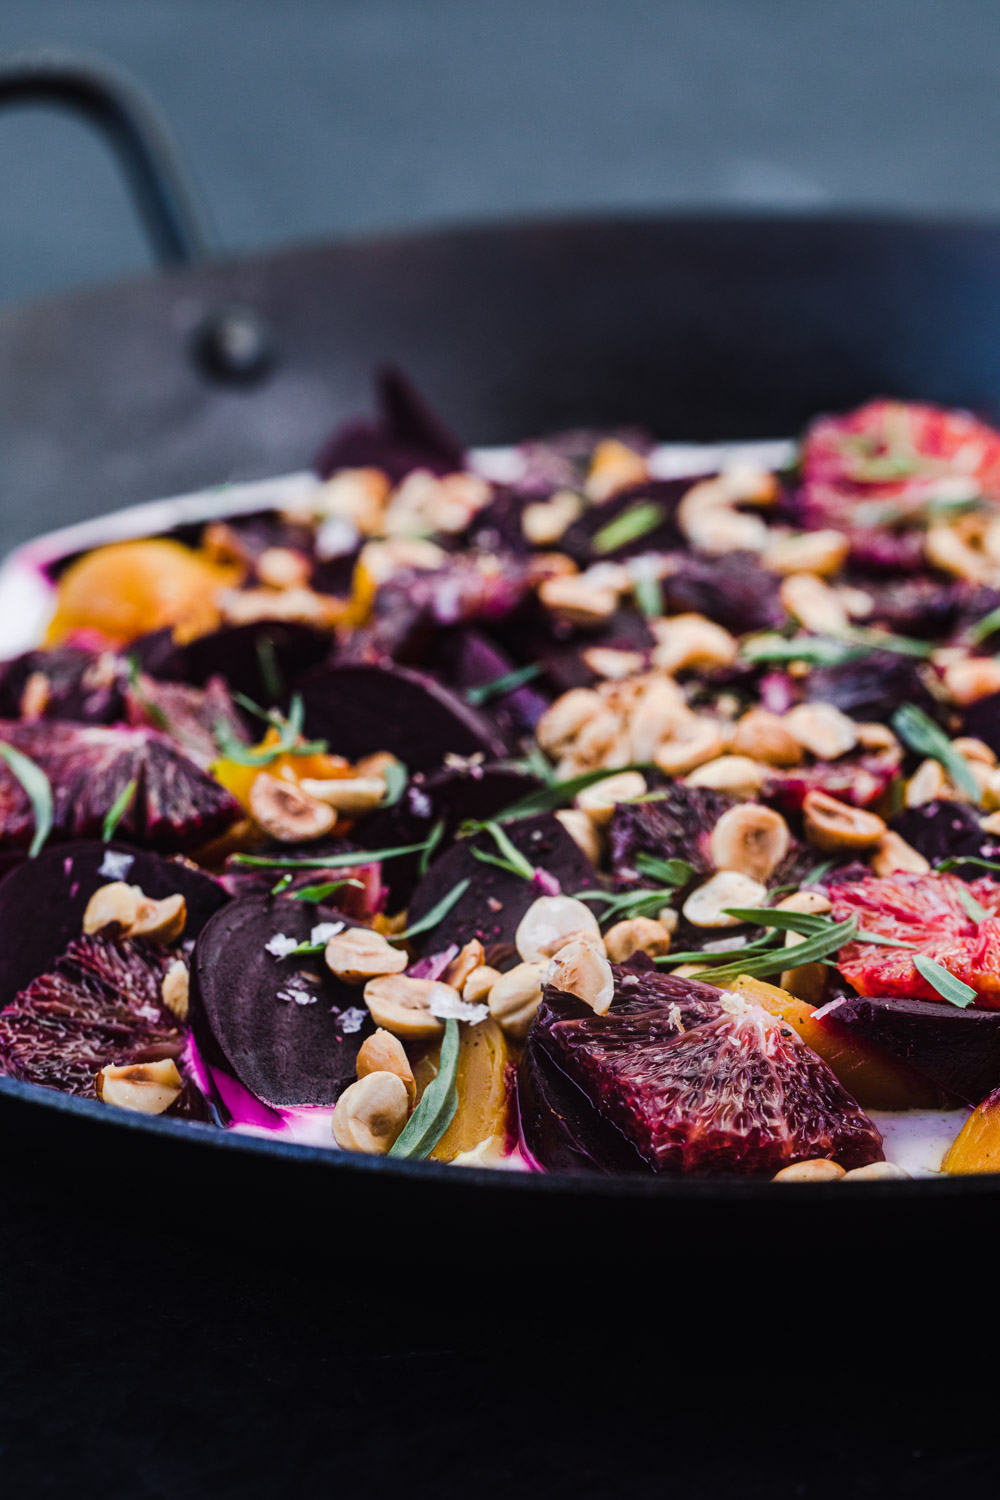 Roasted beet salad, side angle shot, all done and ready to be eaten.